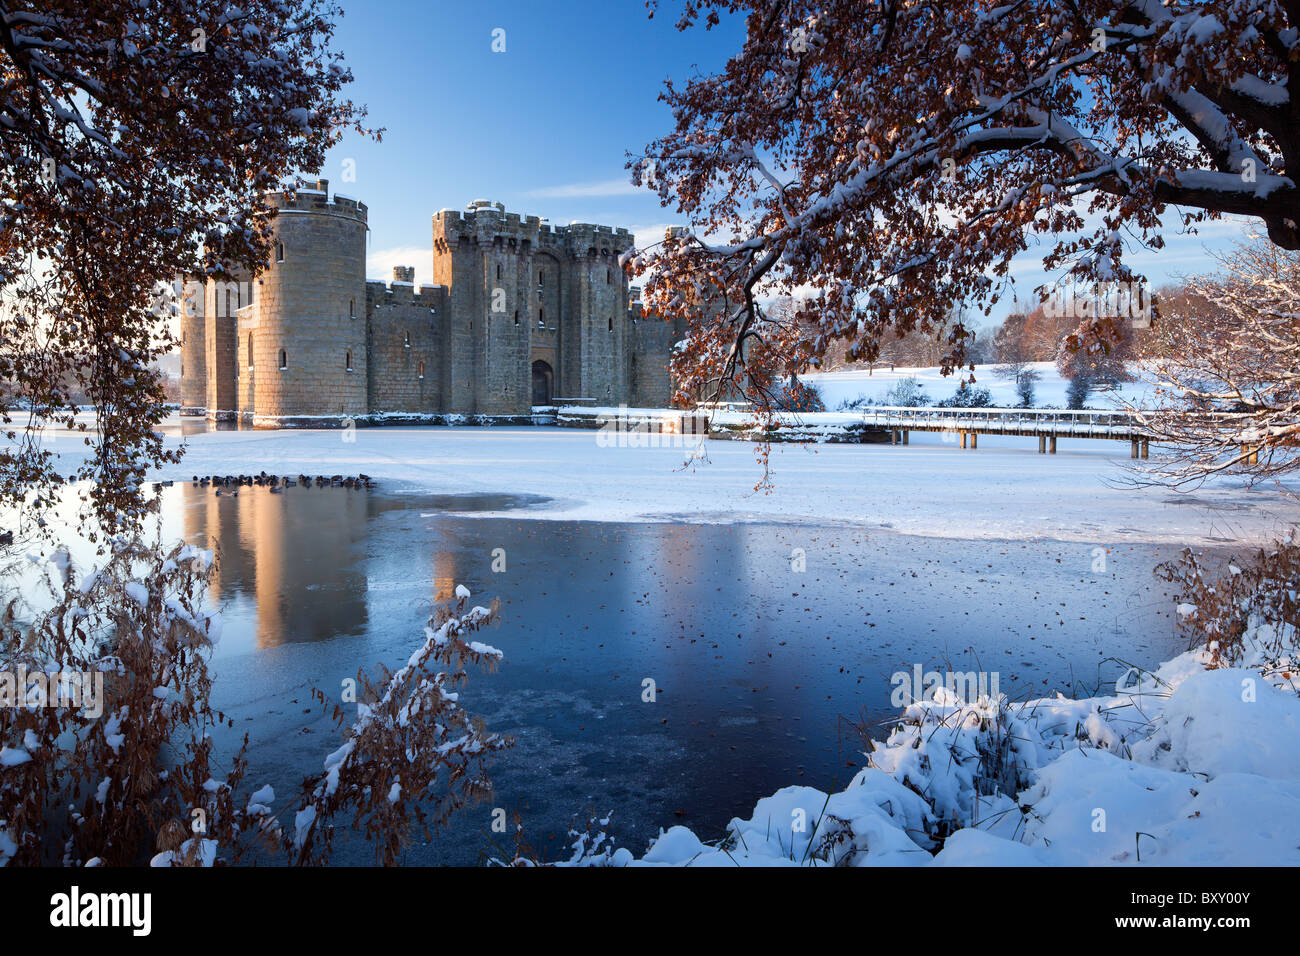 a cold, crisp winter's morning after fresh snowfall and minus 10 temperatures at beautiful Bodiam Castle in - Stock Image